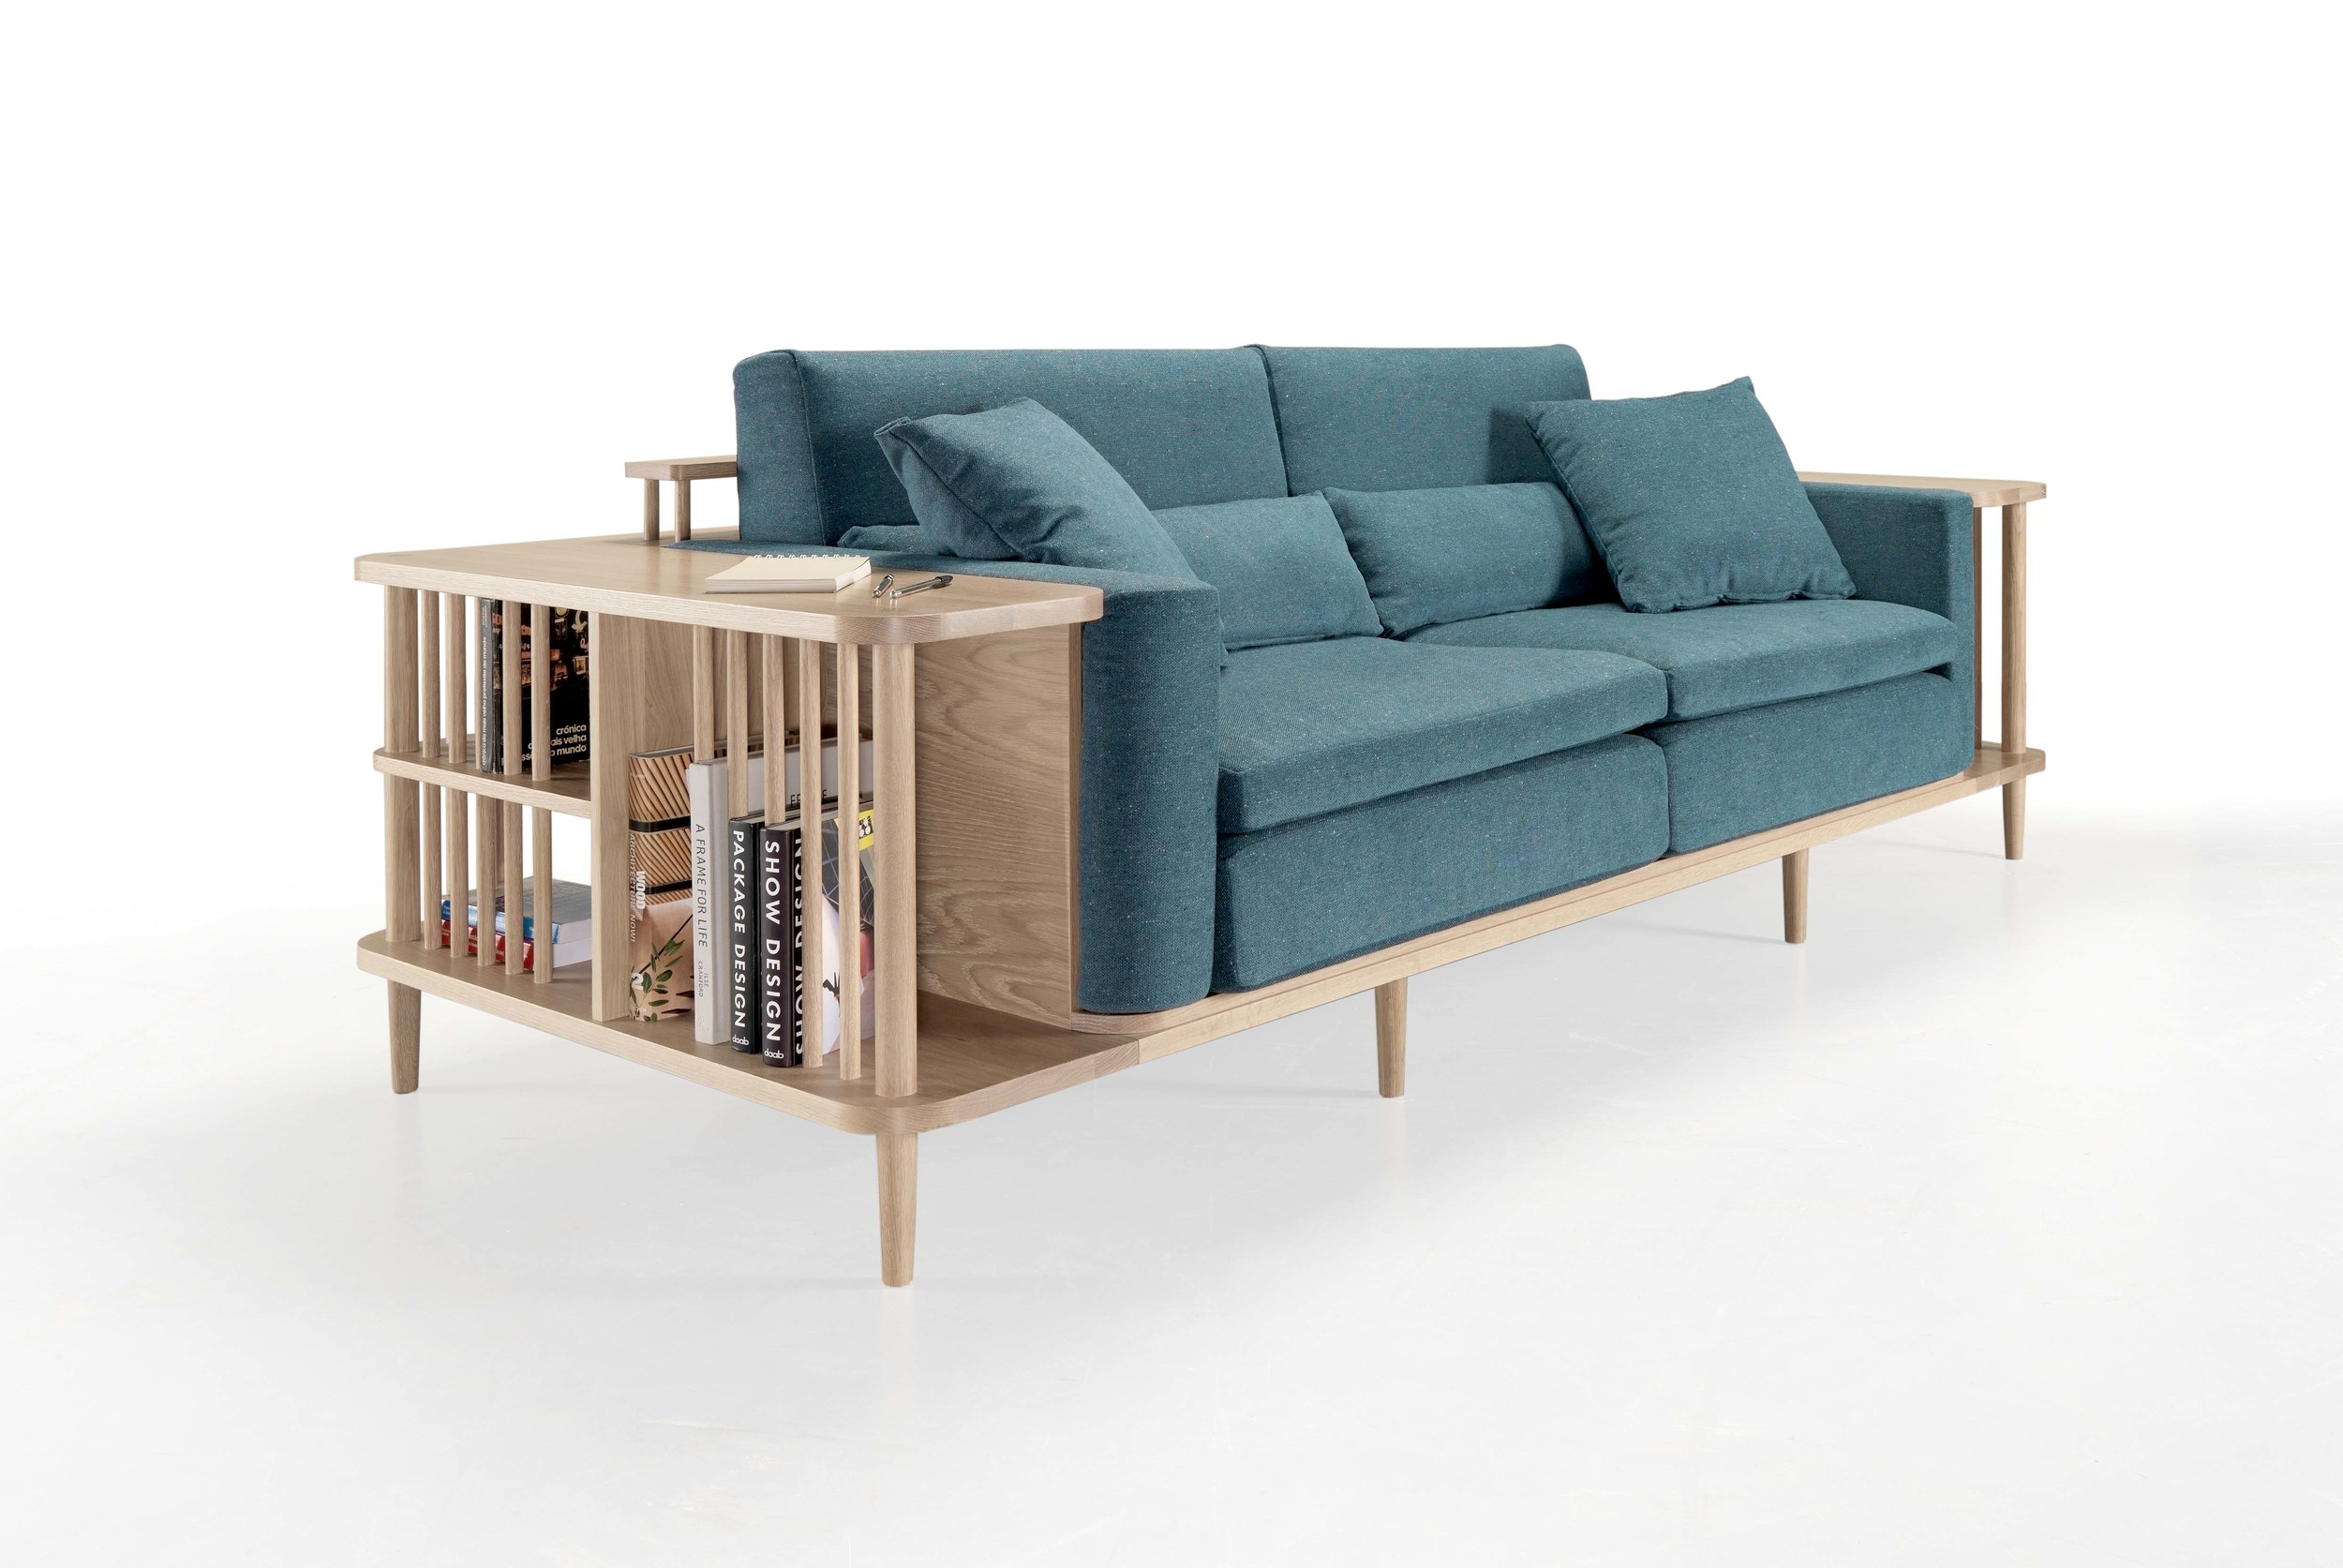 SCAFFOLD SOFA BY ANDRÉ TEOMAN   Its surrounding wooden frame allows you to use it as a bookshelf or as a division between the living room and dining room.